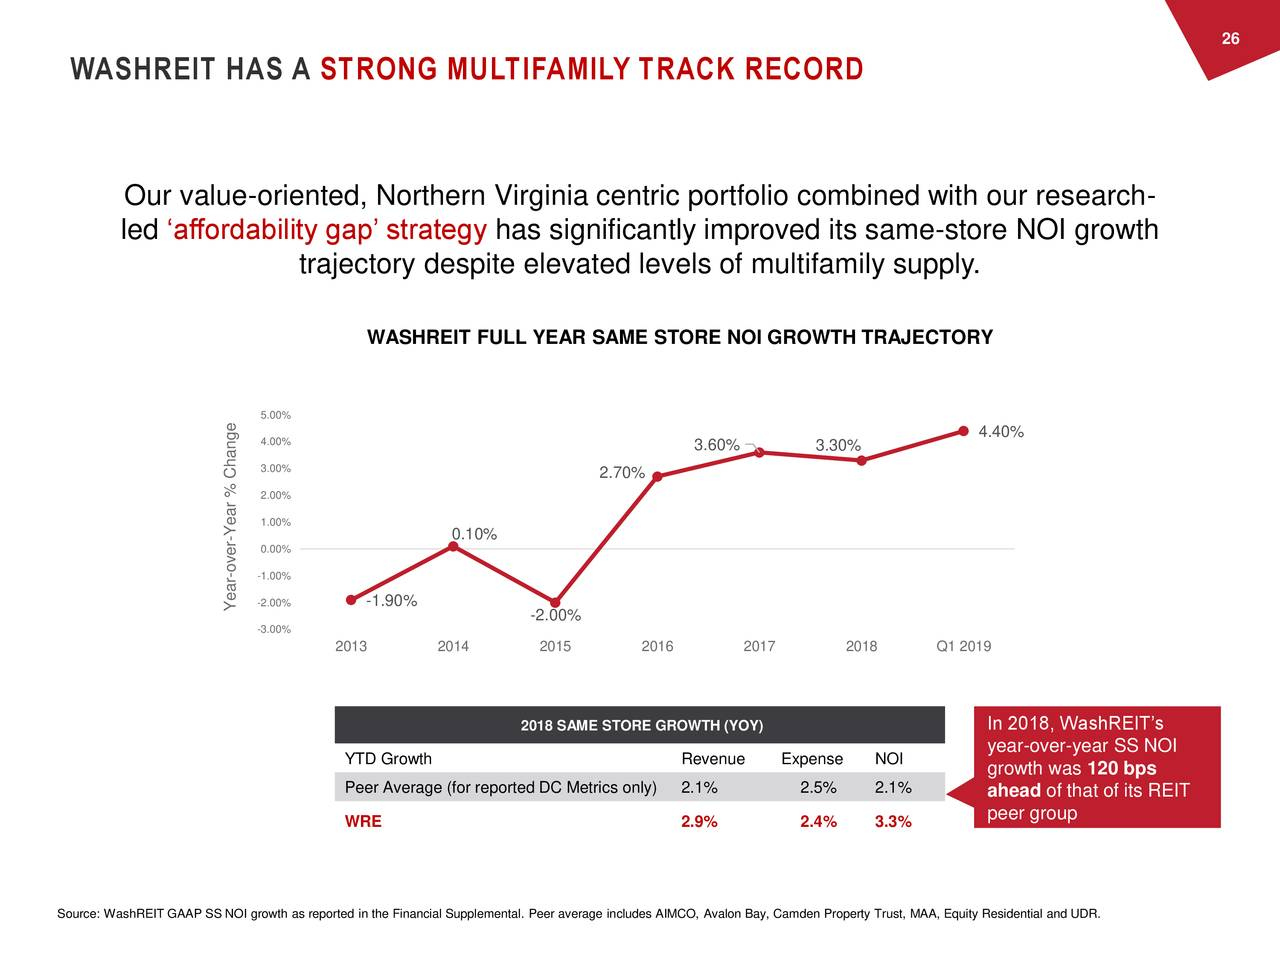 WASHREIT HAS A STRONG MULTIFAMILY TRACK RECORD Our value-oriented, Northern Virginia centric portfolio combined with our research- led 'affordability gap' strategy has significantly improved its same-store NOI growth trajectory despite elevated levels of multifamily supply. WASHREIT FULL YEAR SAME STORE NOI GROWTH TRAJECTORY 5.00% 4.00% 4.40% 3.60% 3.30% 3.00% 2.70% 2.00% 1.00% -ear % Change 0.10% 0.00% over - -1.00% -1.90% Year2.00% -2.00% -3.00% 2013 2014 2015 2016 2017 2018 Q1 2019 2018 SAME STORE GROWTH (YOY) In 2018, WashREIT's year-over-year SS NOI YTD Growth Revenue Expense NOI growth was 120 bps Peer Average (for reported DC Metrics only2.1% 2.5% 2.1% ahead of that of its REIT peer group WRE 2.9% 2.4% 3.3% Source: WashREIT GAAP SS NOI growth as reported in the Financial Supplemental. Peer average includes AIMCO, Avalon Bay, Camden Property Trust, MAA, Equity Residential and UDR.